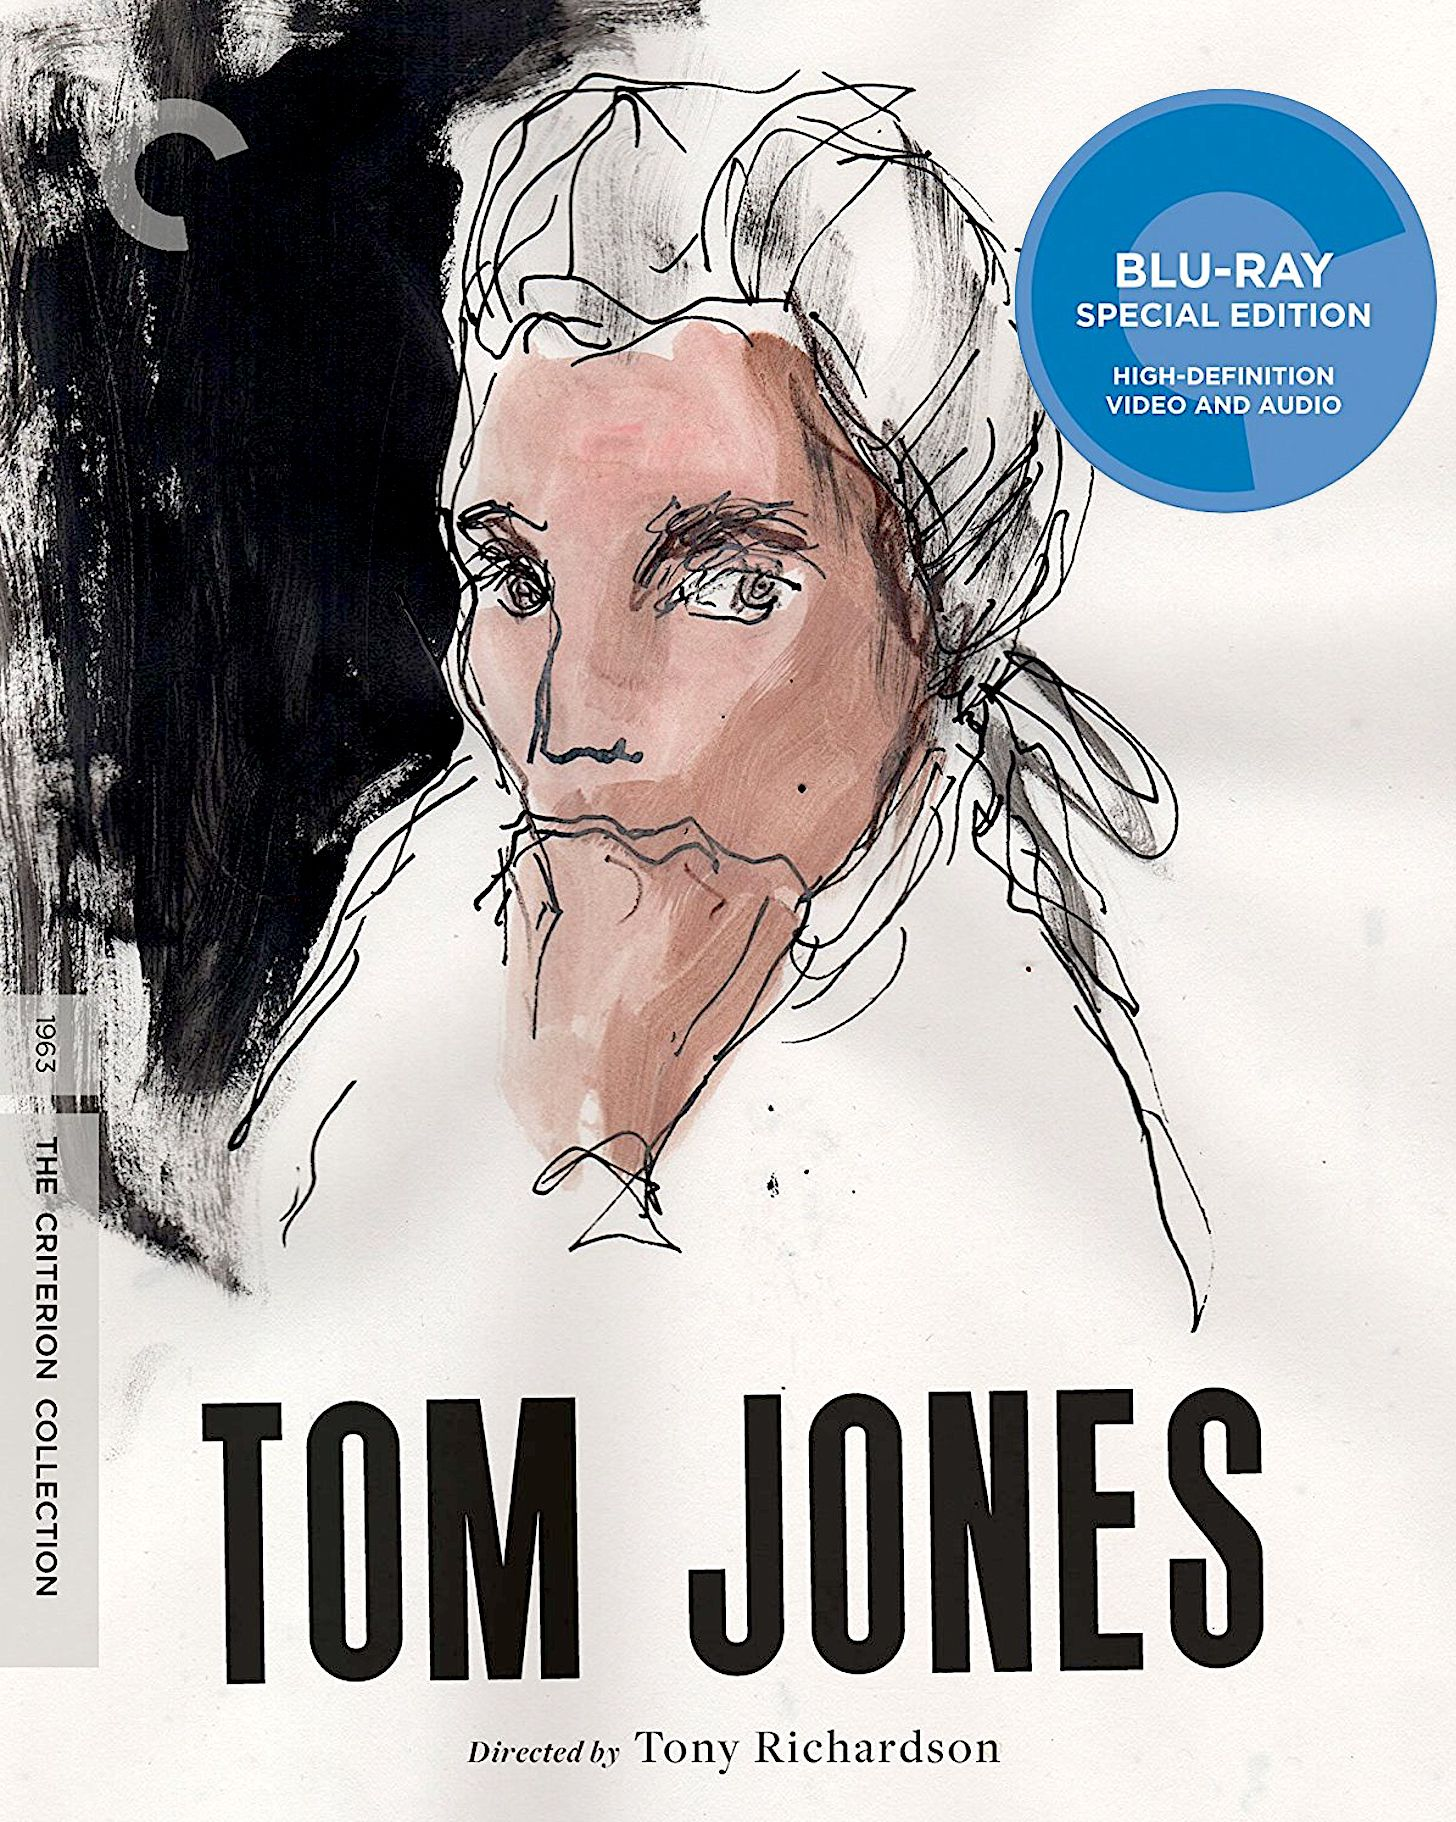 TOM JONES BLURAY SPINE 909 (THE CRITERION COLLECTION